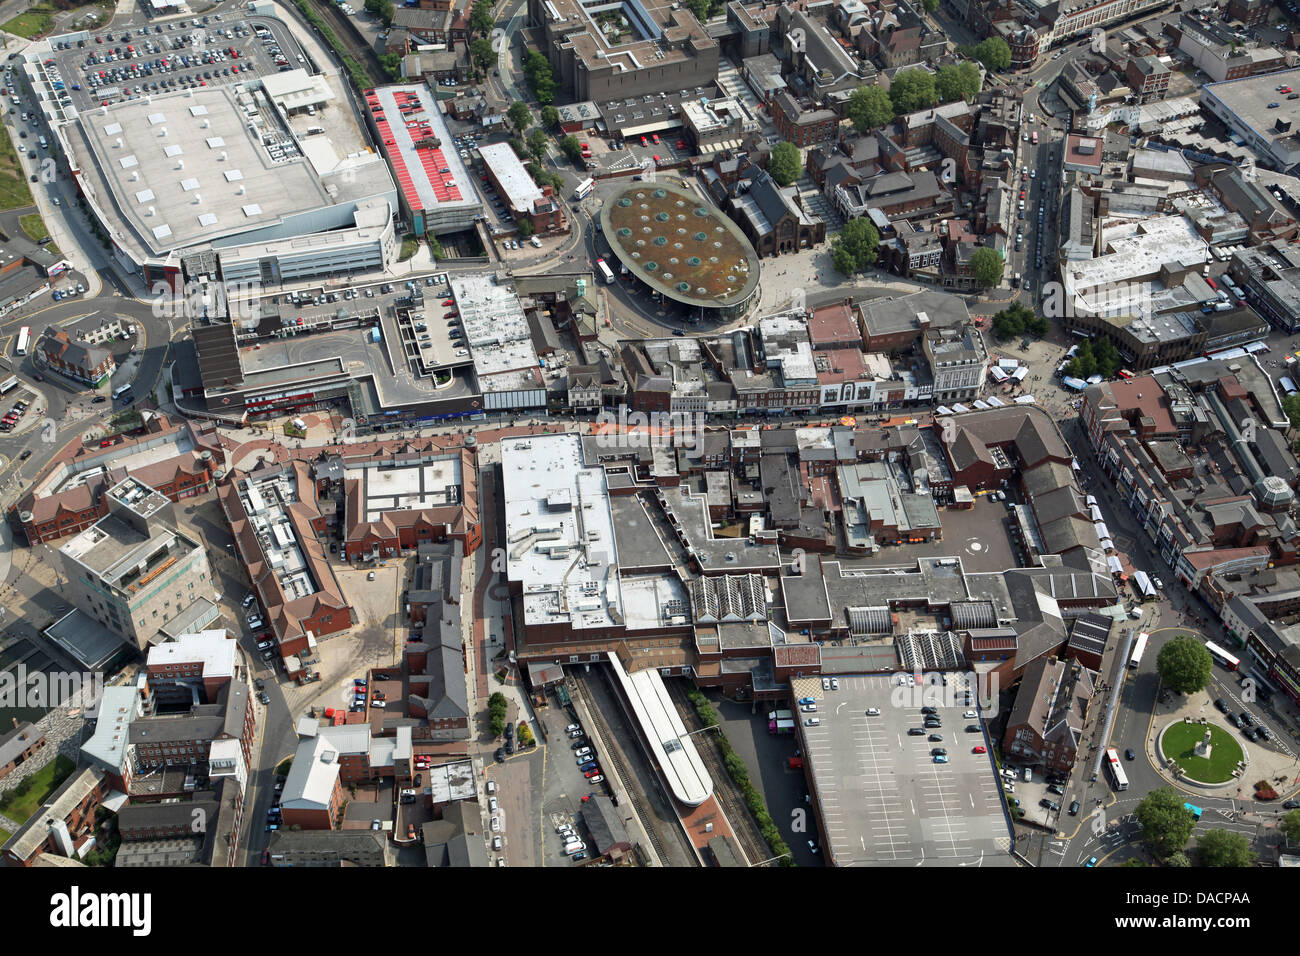 aerial view of Walsall town centre - Stock Image